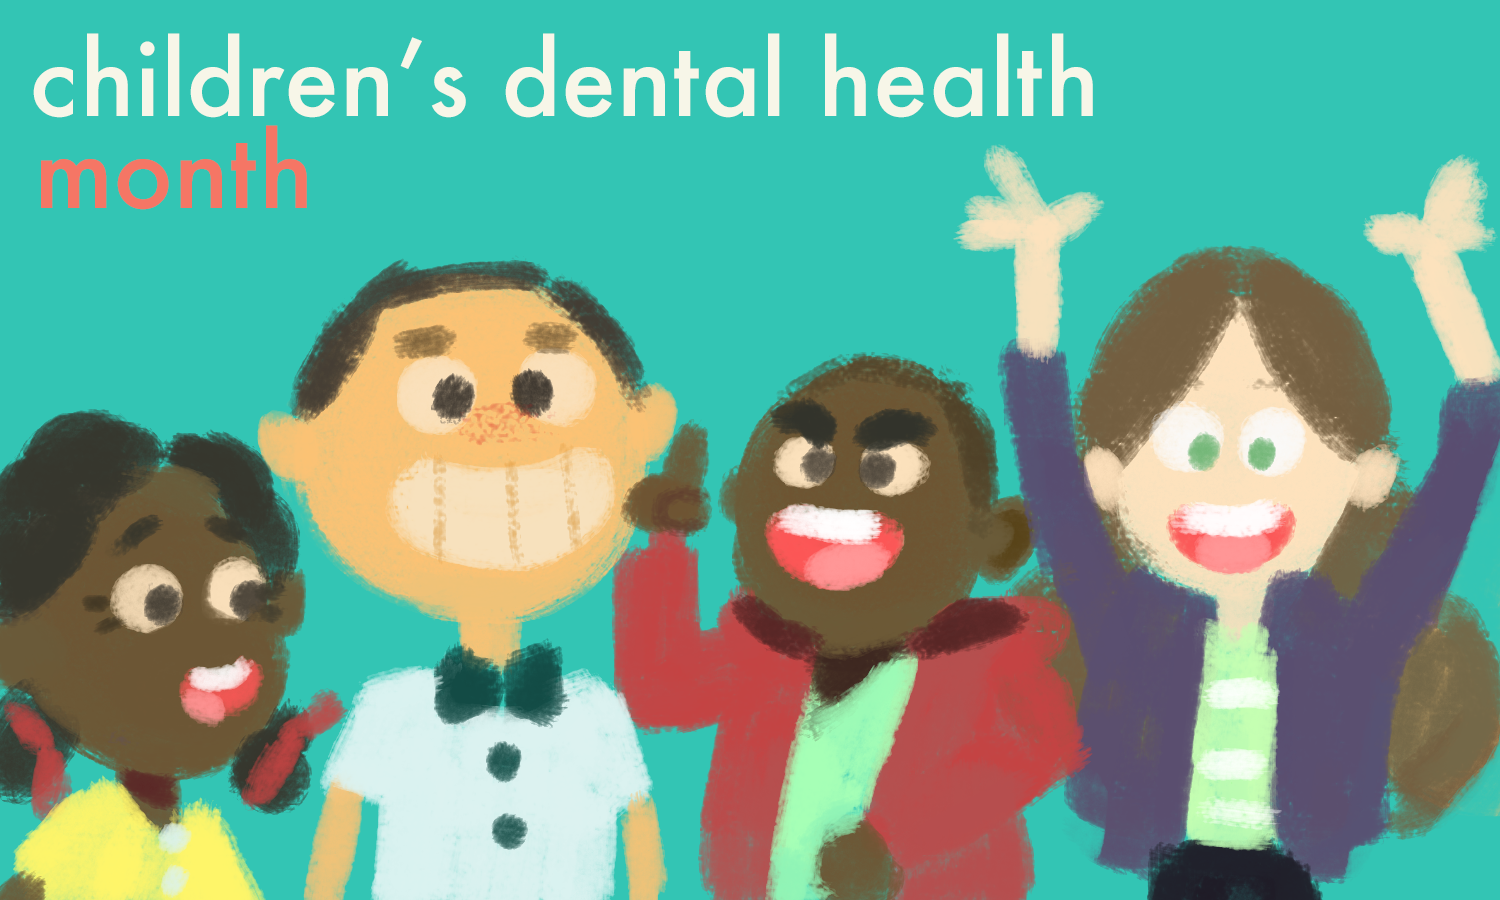 dental_health.png